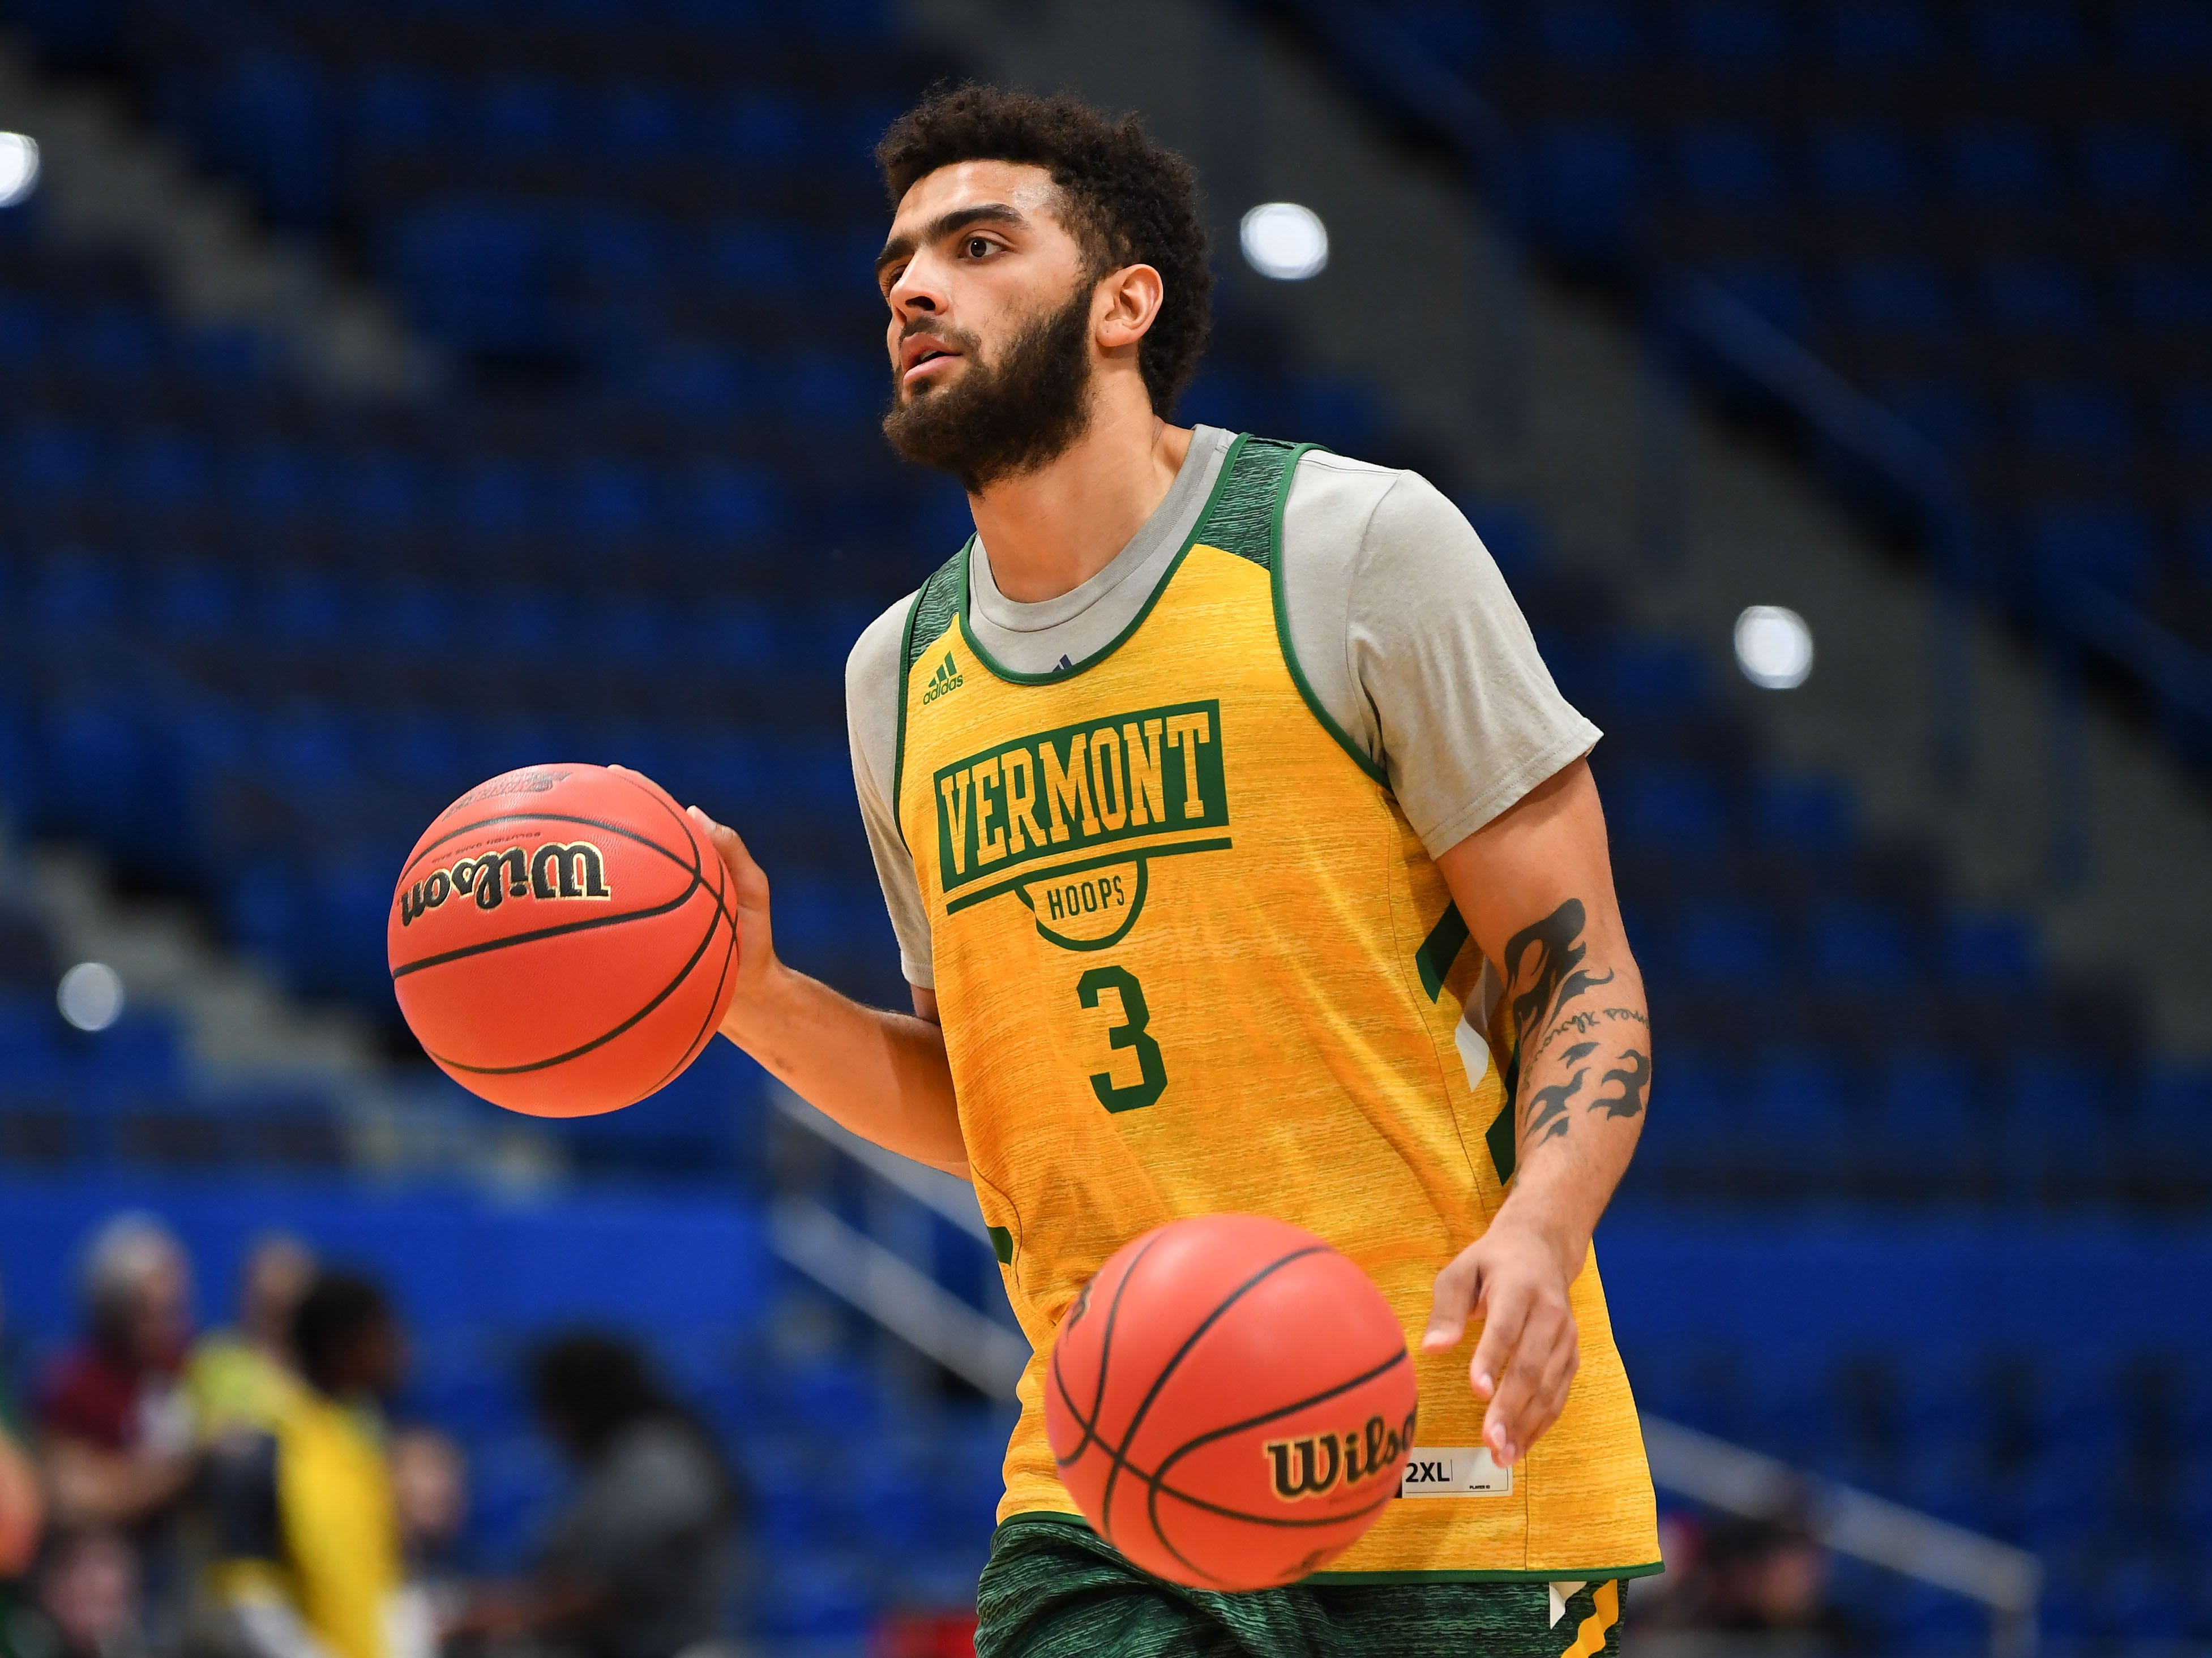 Mar 20, 2019; Hartford, CT, USA; Vermont Catamounts forward Anthony Lamb (3) dribbles during practice before the first round of the 2019 NCAA Tournament at XL Center. Mandatory Credit: Robert Deutsch-USA TODAY Sports